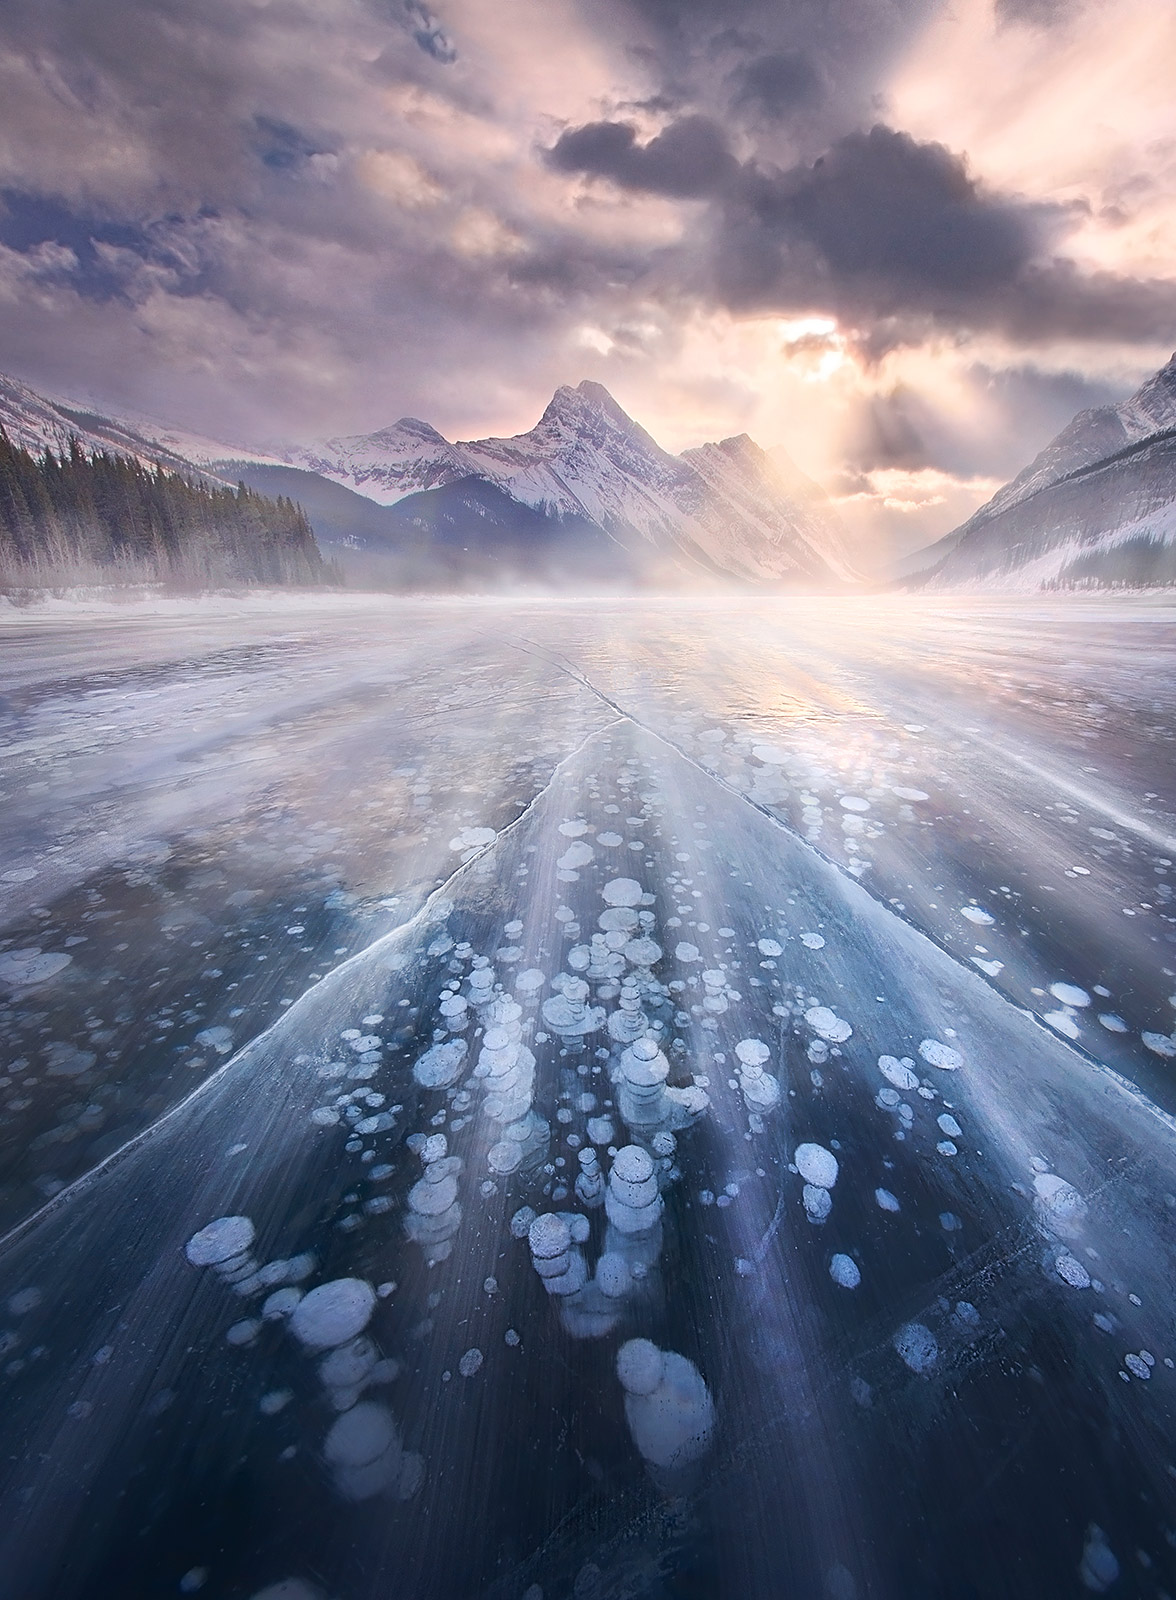 Canadian Rockies, Ice, Lake, Frozen, Bubbles, Peaks, photo